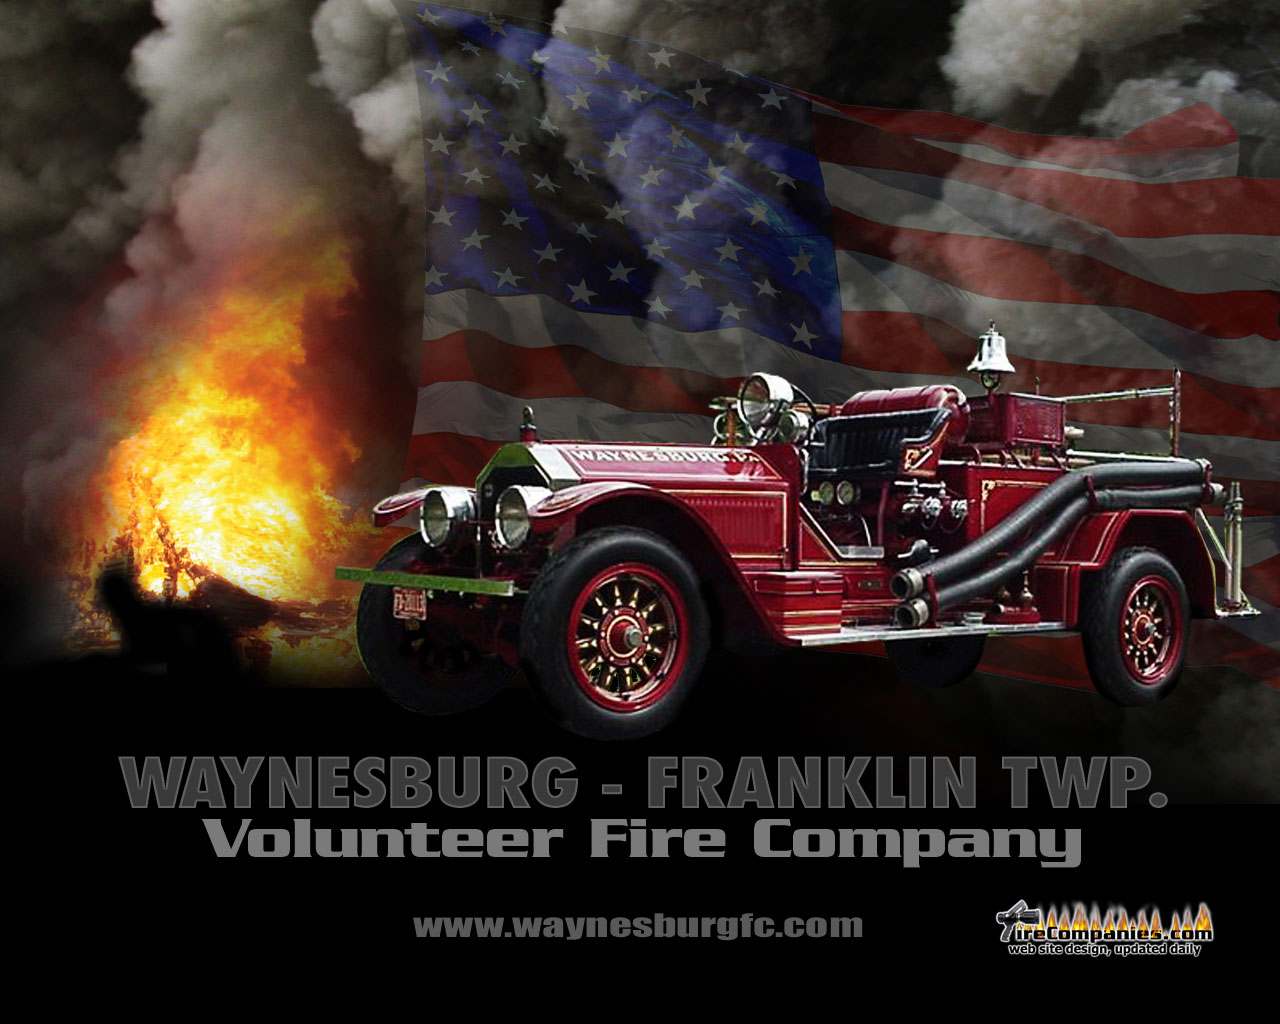 Volunteer Firefighter Logo Wallpaper Volunteer fire company 1280x1024